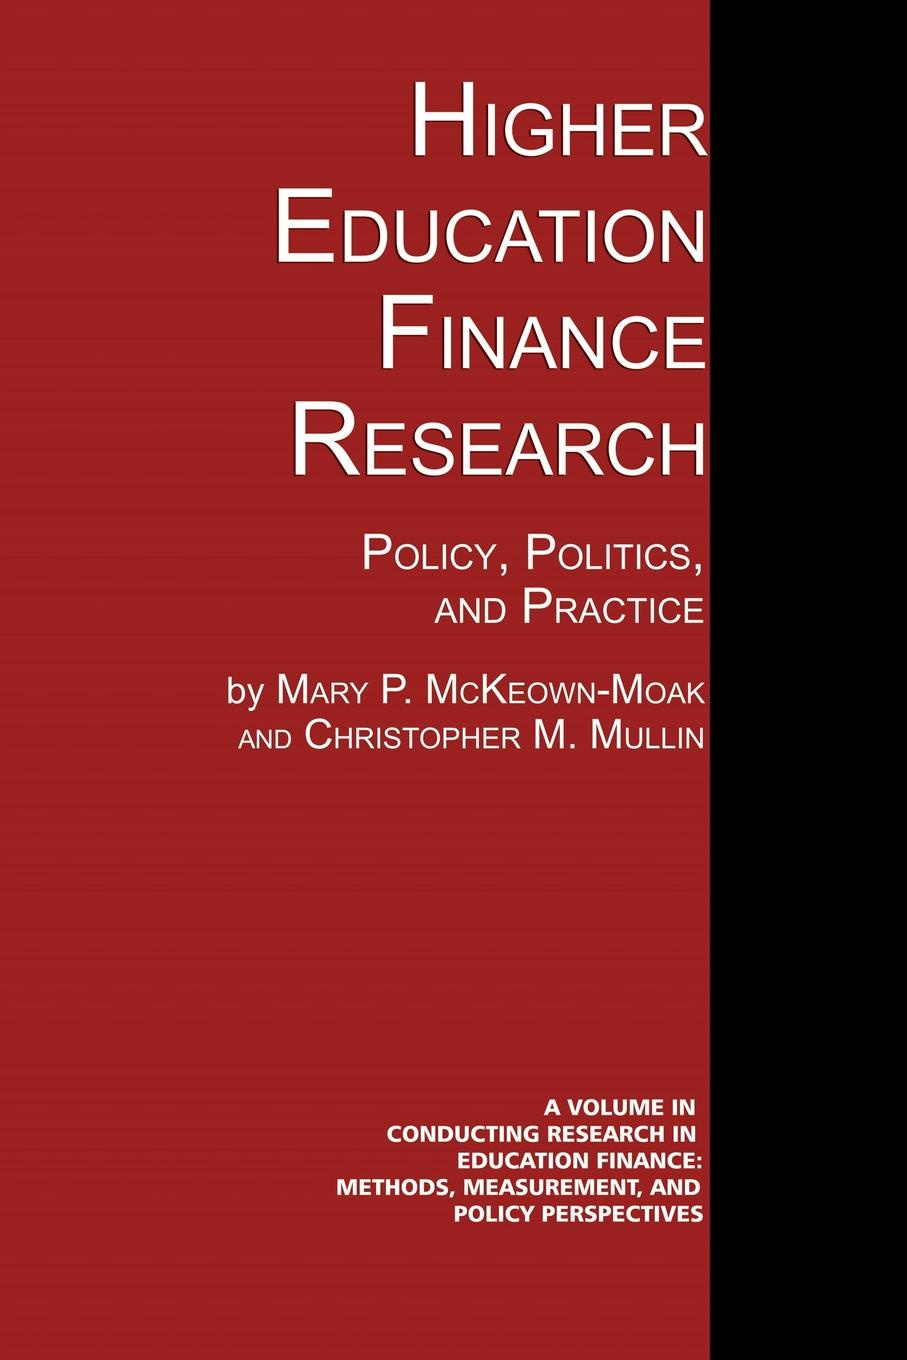 Mary P. McKeown-Moak, Christopher M. Mullin Higher Education Finance Research. Policy, Politics, and Practice mary p mckeown moak christopher m mullin higher education finance research policy politics and practice